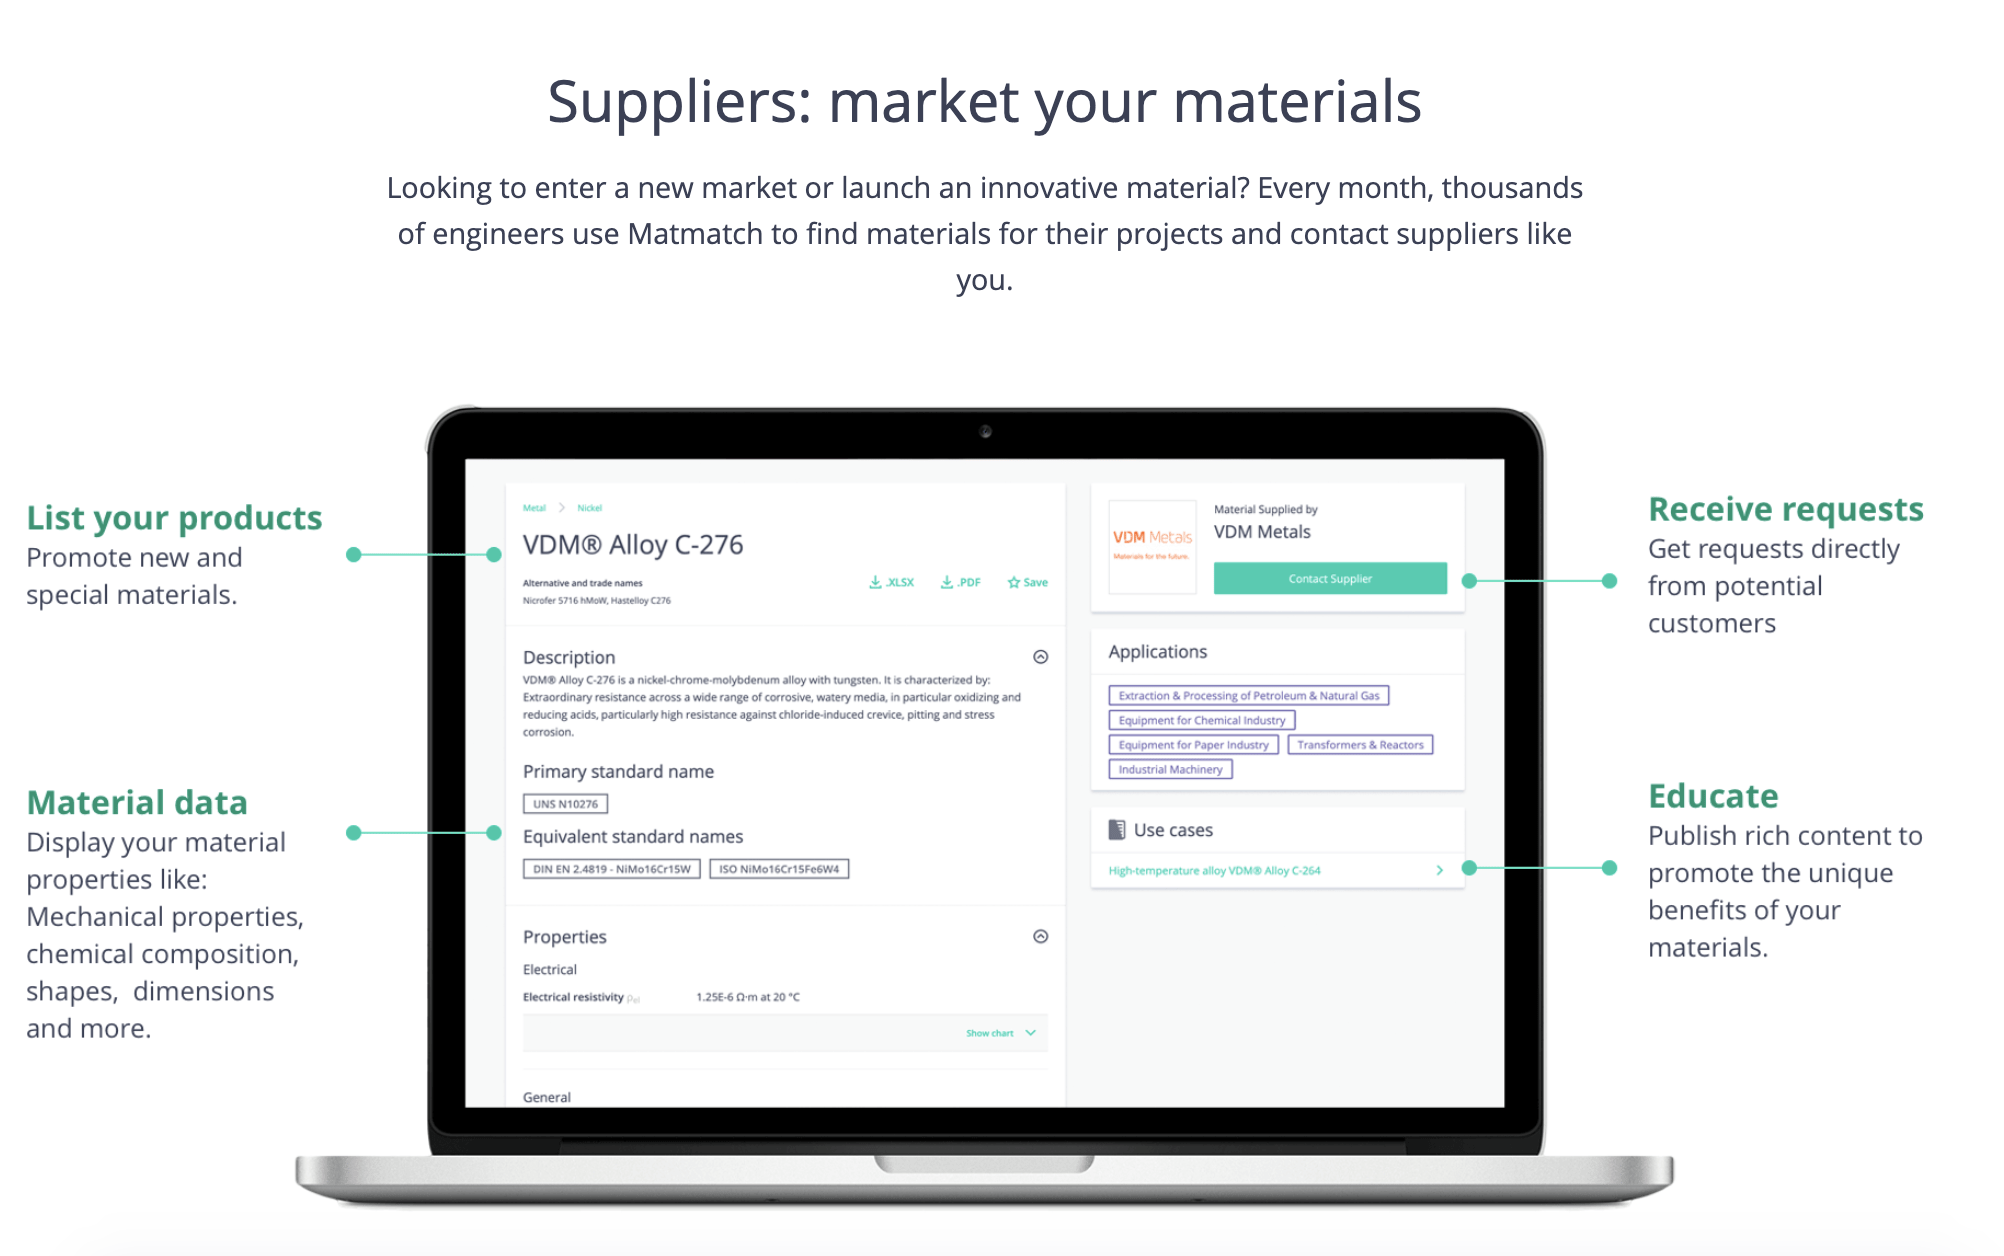 Matmatch - market your materials in the right way